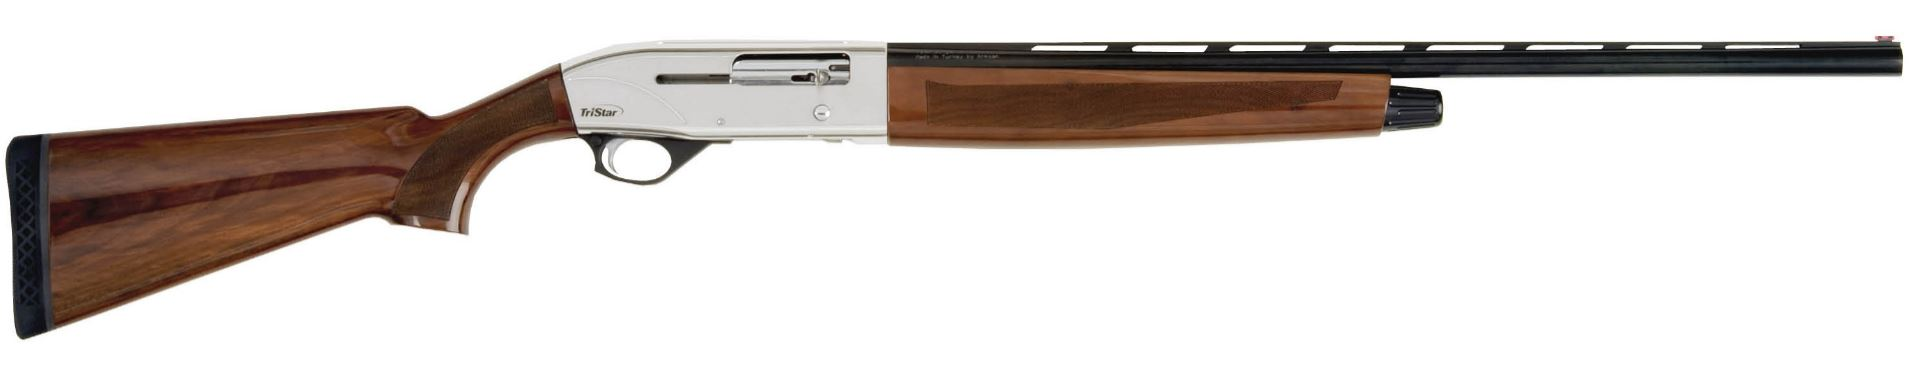 TriStar Sporting Arms Viper G2 Silver 28 Gauge